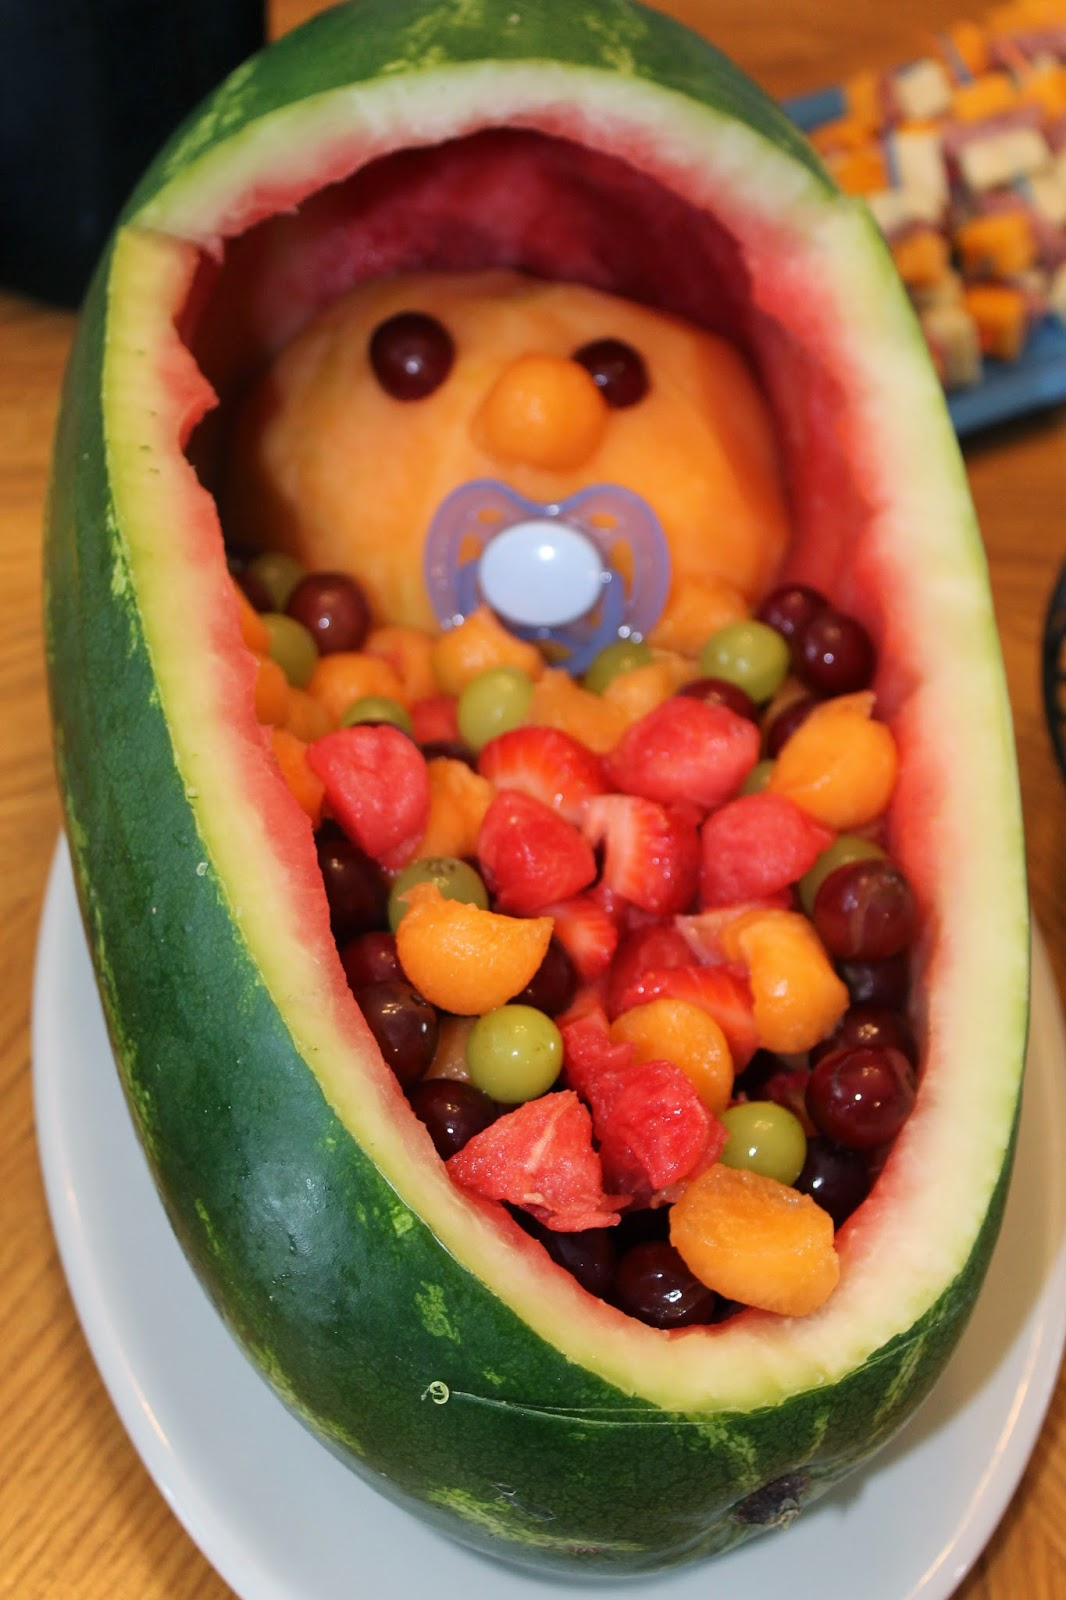 how to make a baby out of fruit, fruit salad